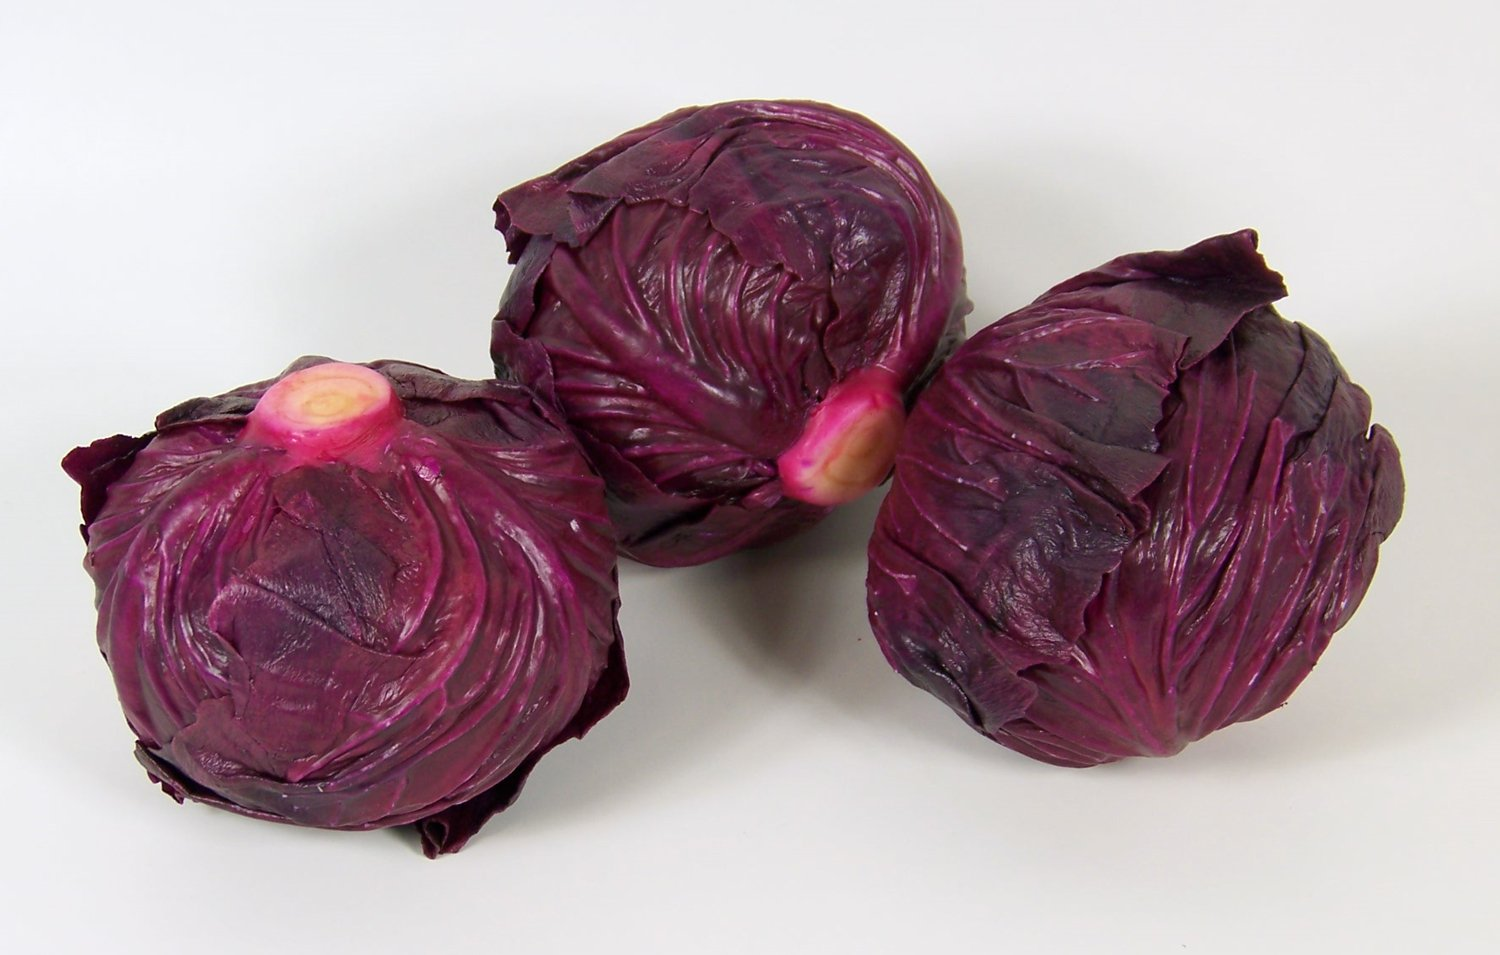 Designer-One-Artificial-Faux-Fake-Purple-Cabbage-Vegetable